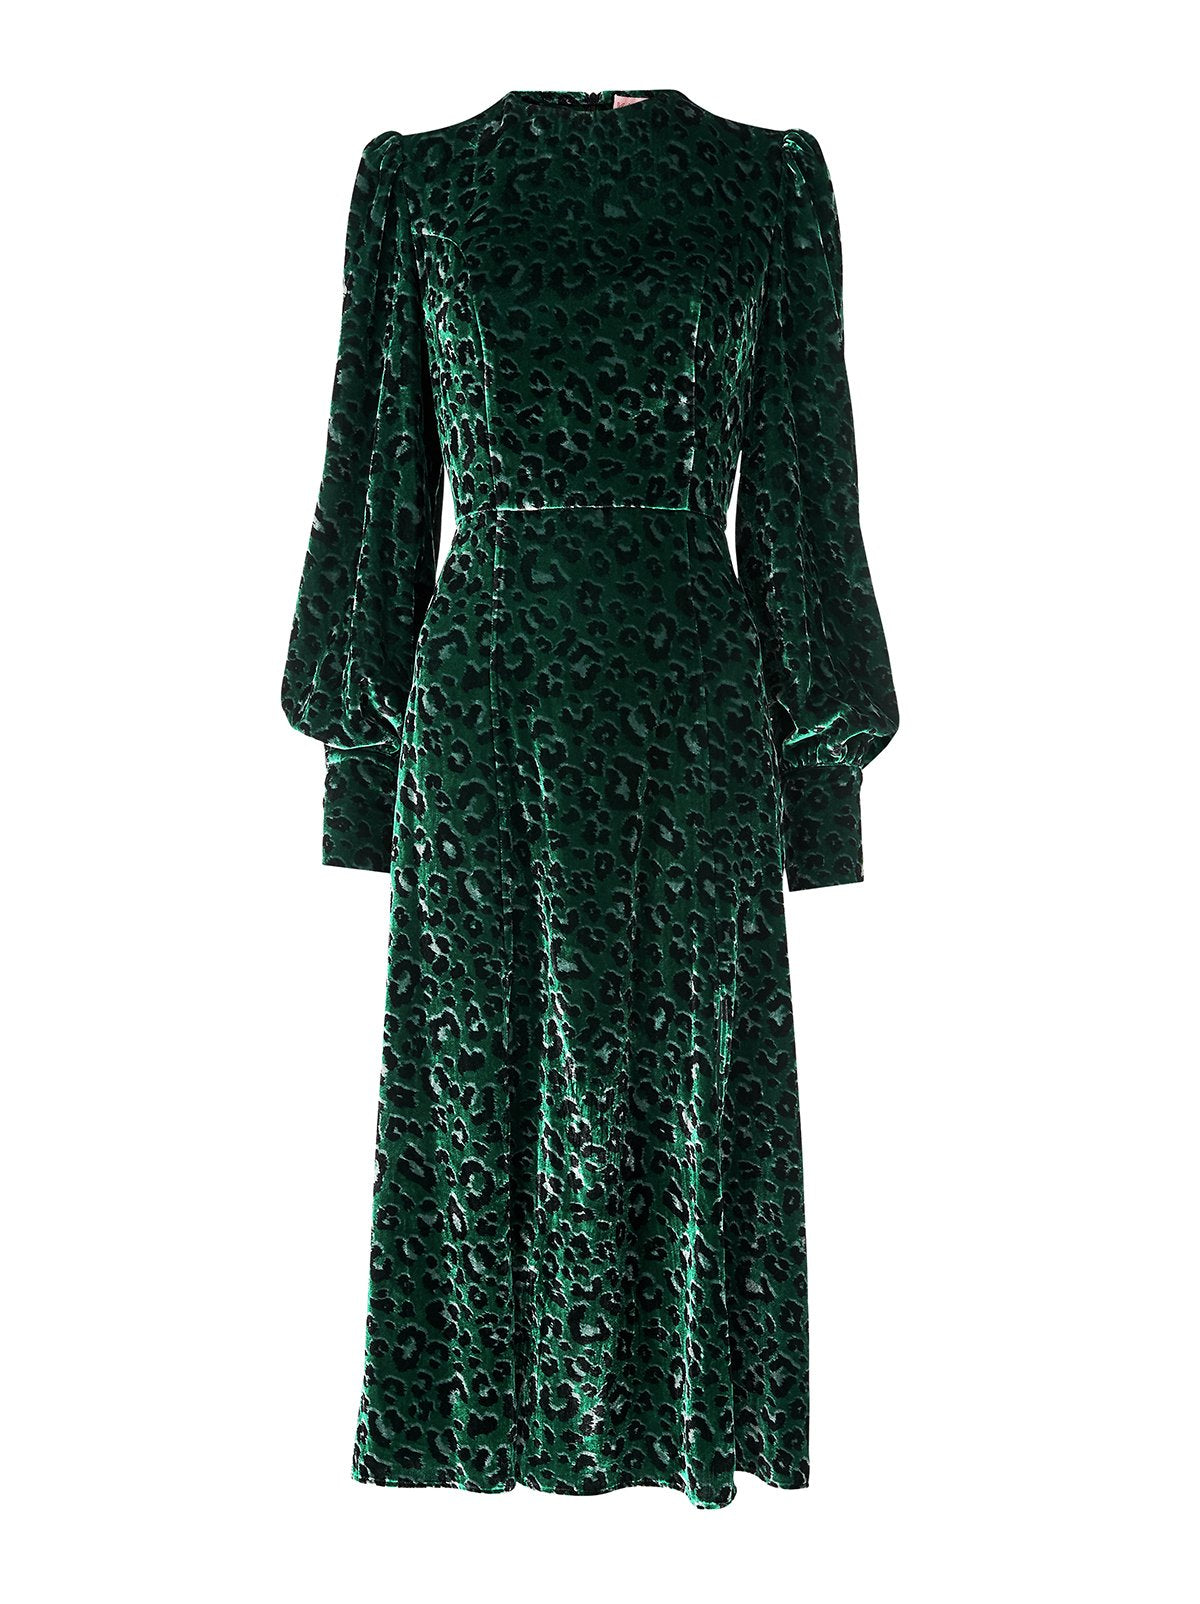 Gloria Green Leopard Print Velvet Midi Dress by KITRI Studio